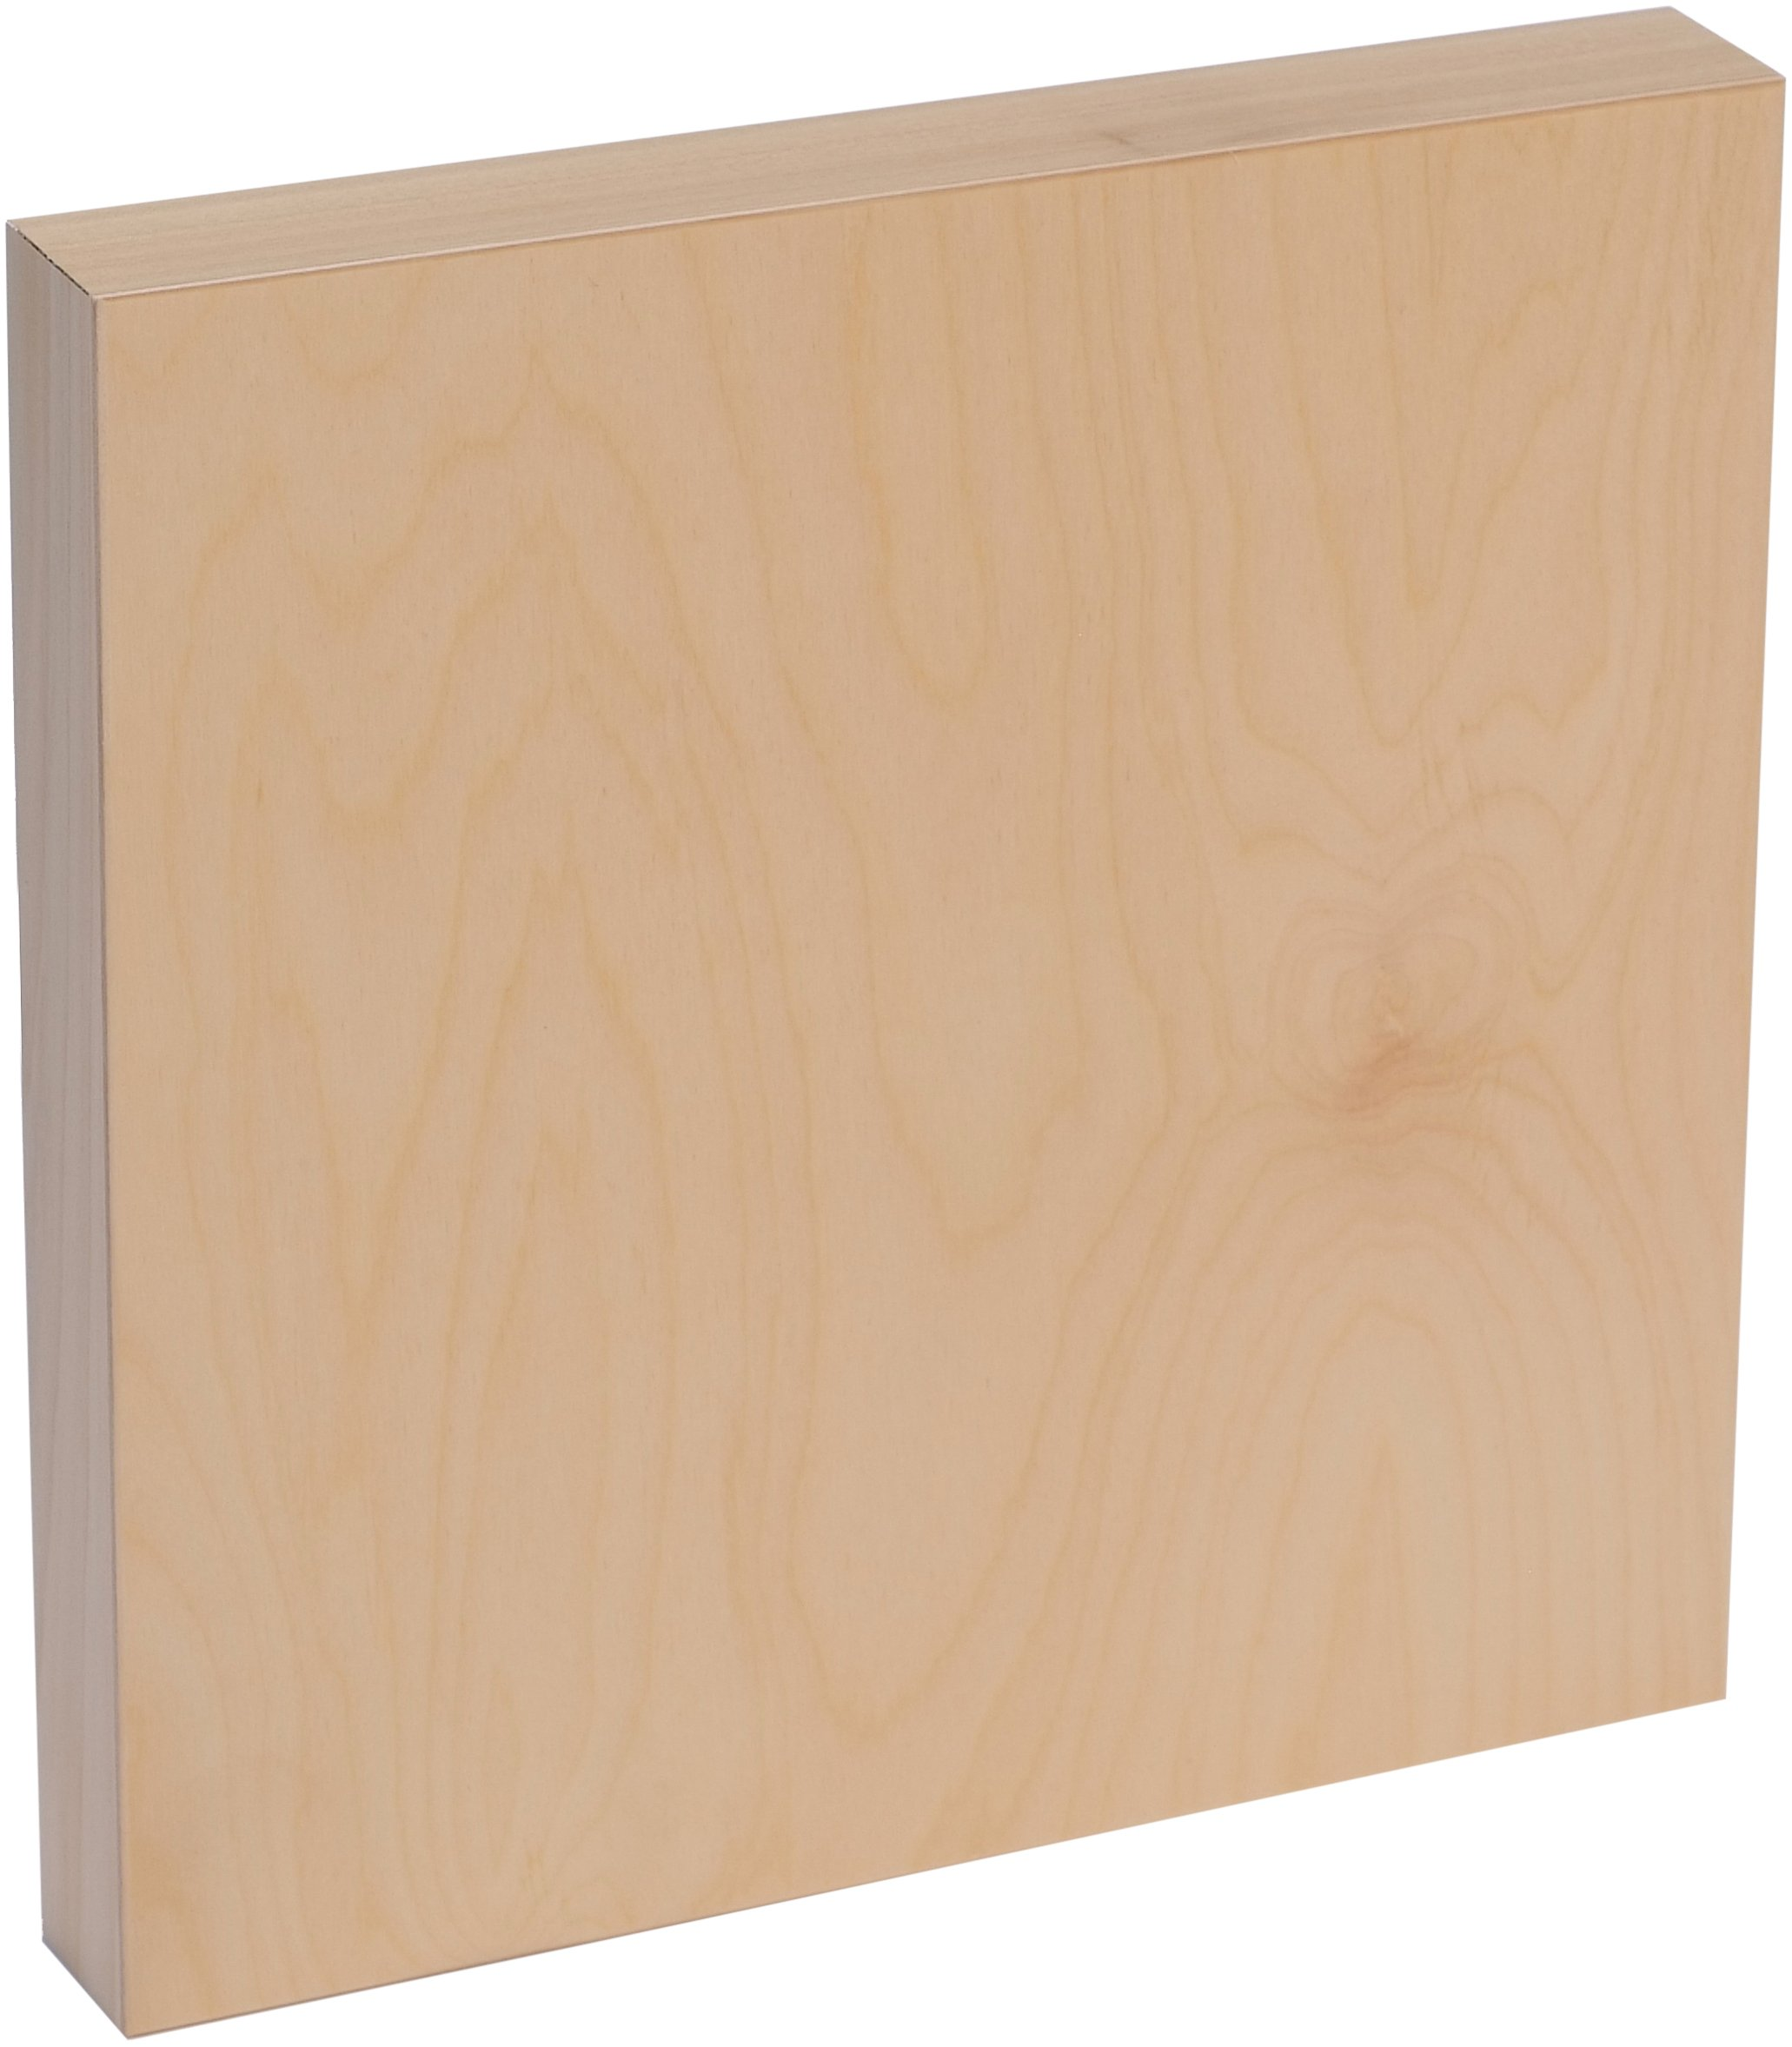 American Easel 24 Inch by 24 Inch by 2 1/2 Inch Deep Cradled Painting Panel by American Easel, LLC.